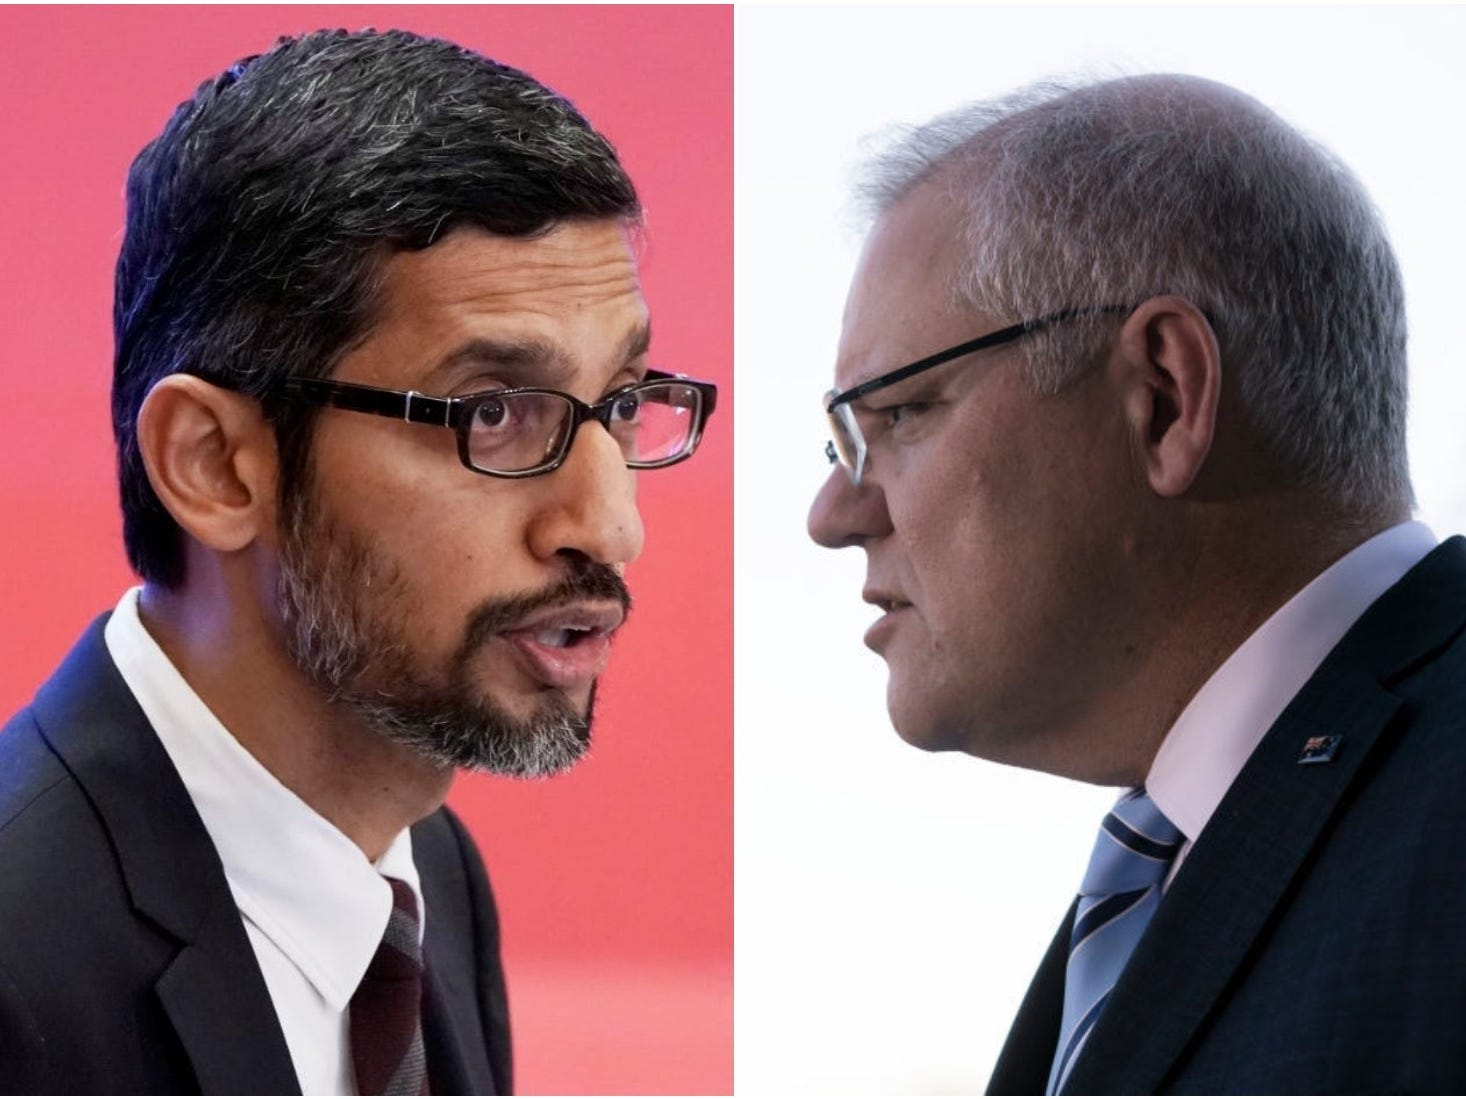 Google's risk to quit Australia follows years of wrangling with news moguls love Rupert Murdoch and lawmakers scared by its energy